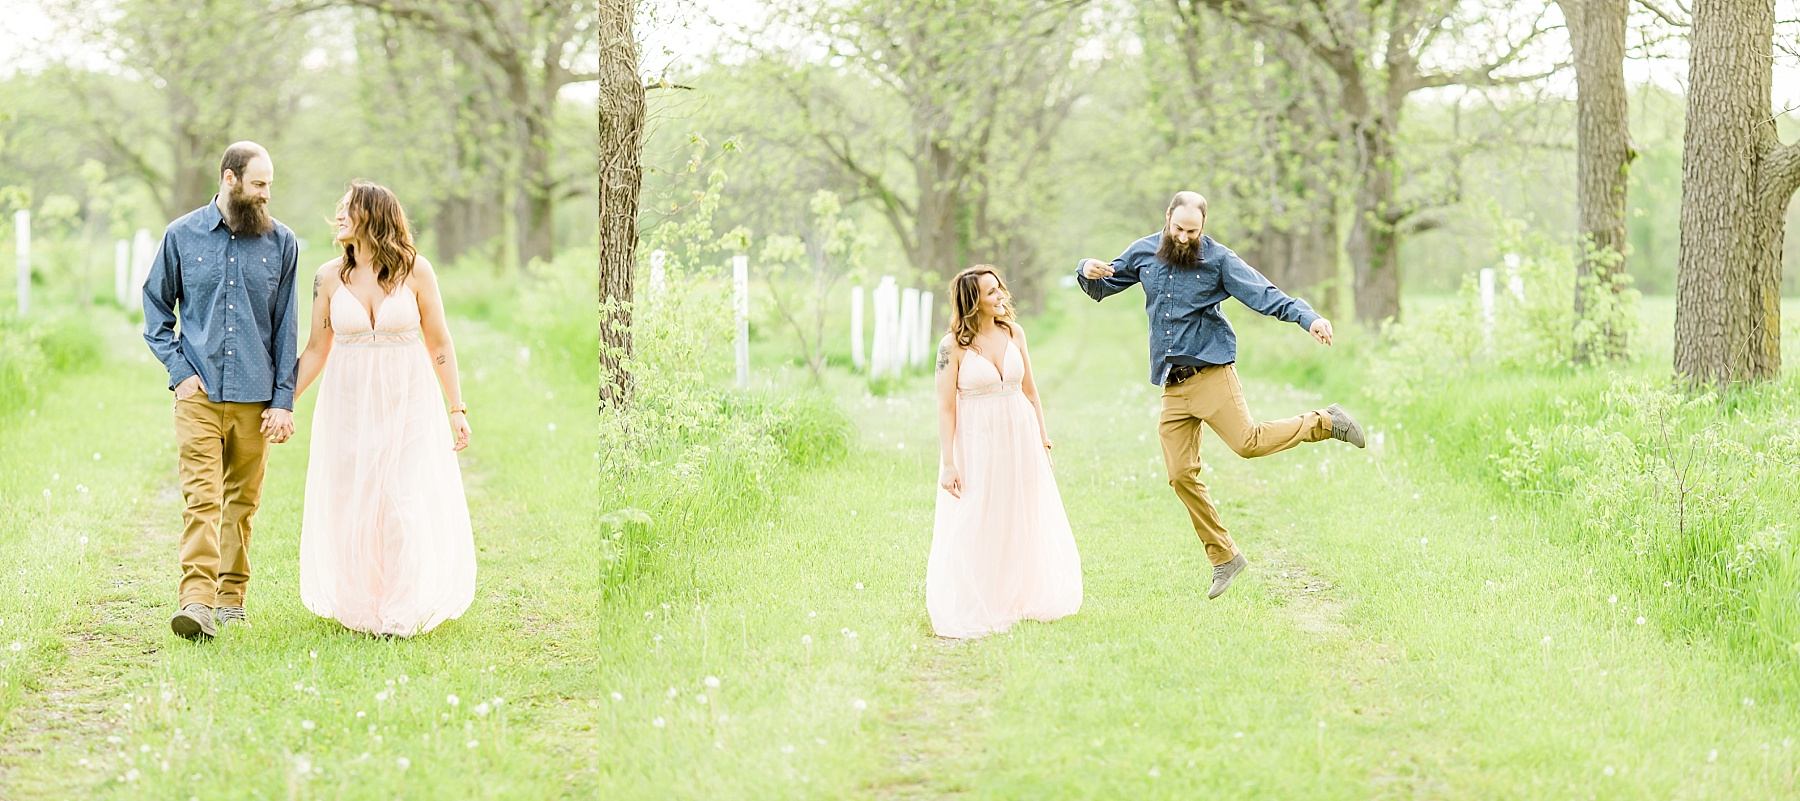 monticello indiana wedding engagement photography simple adventure weird_0035.jpg